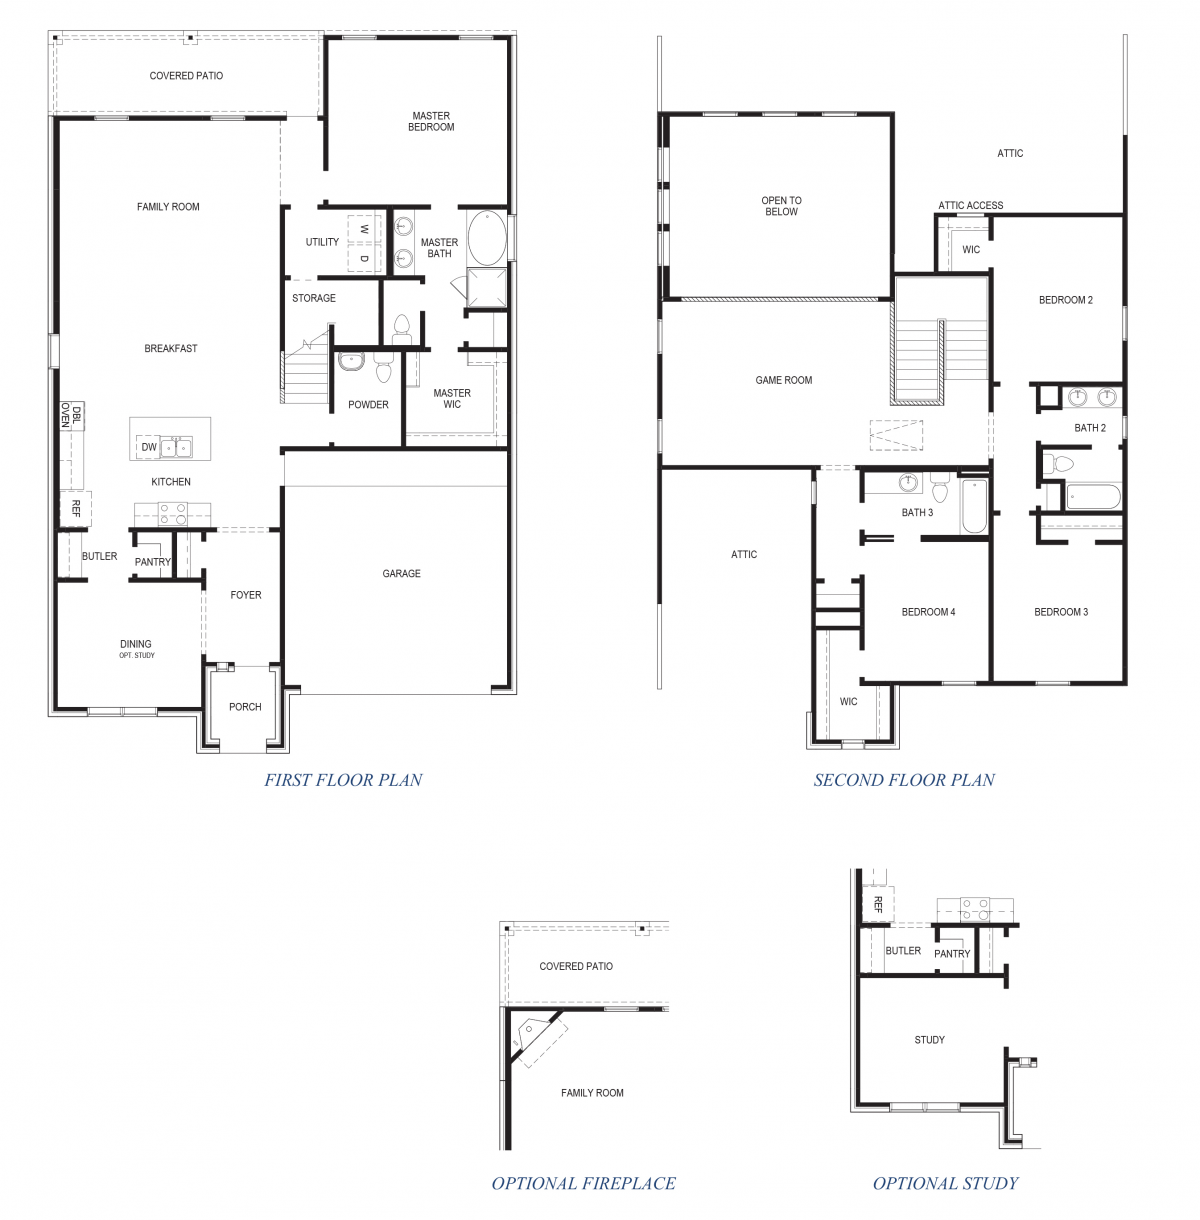 D.R. Horton Floor Plan 2853 Pattison